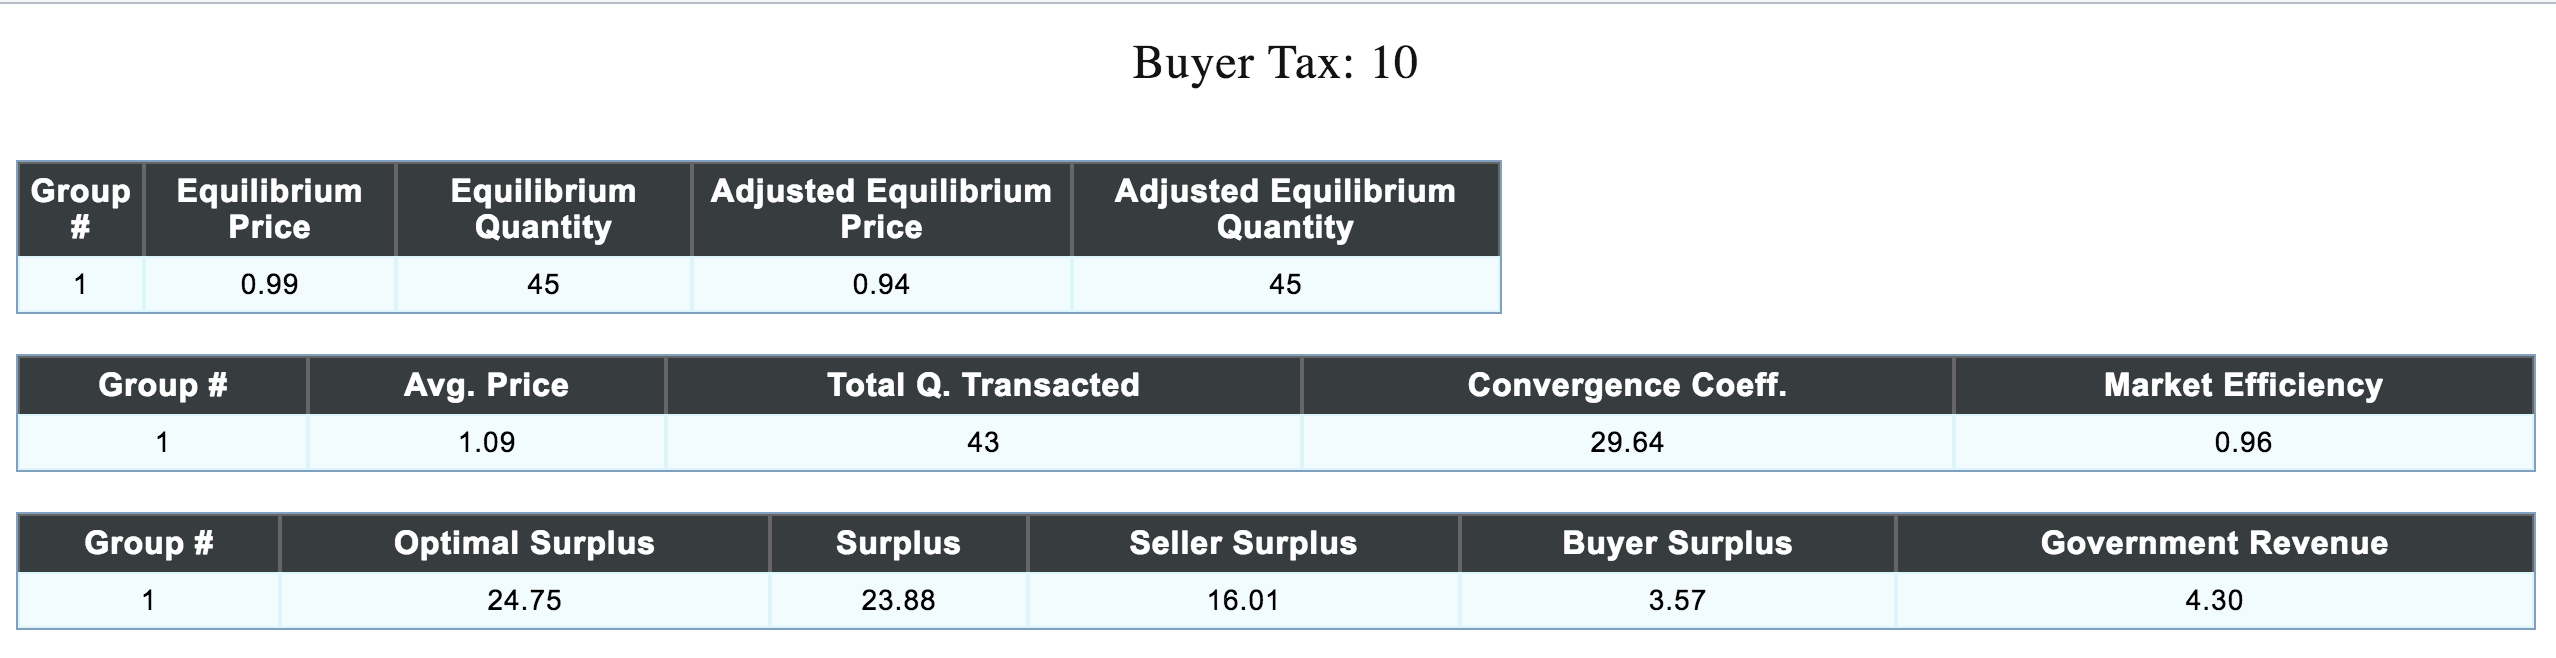 Buyers tax 10 cents